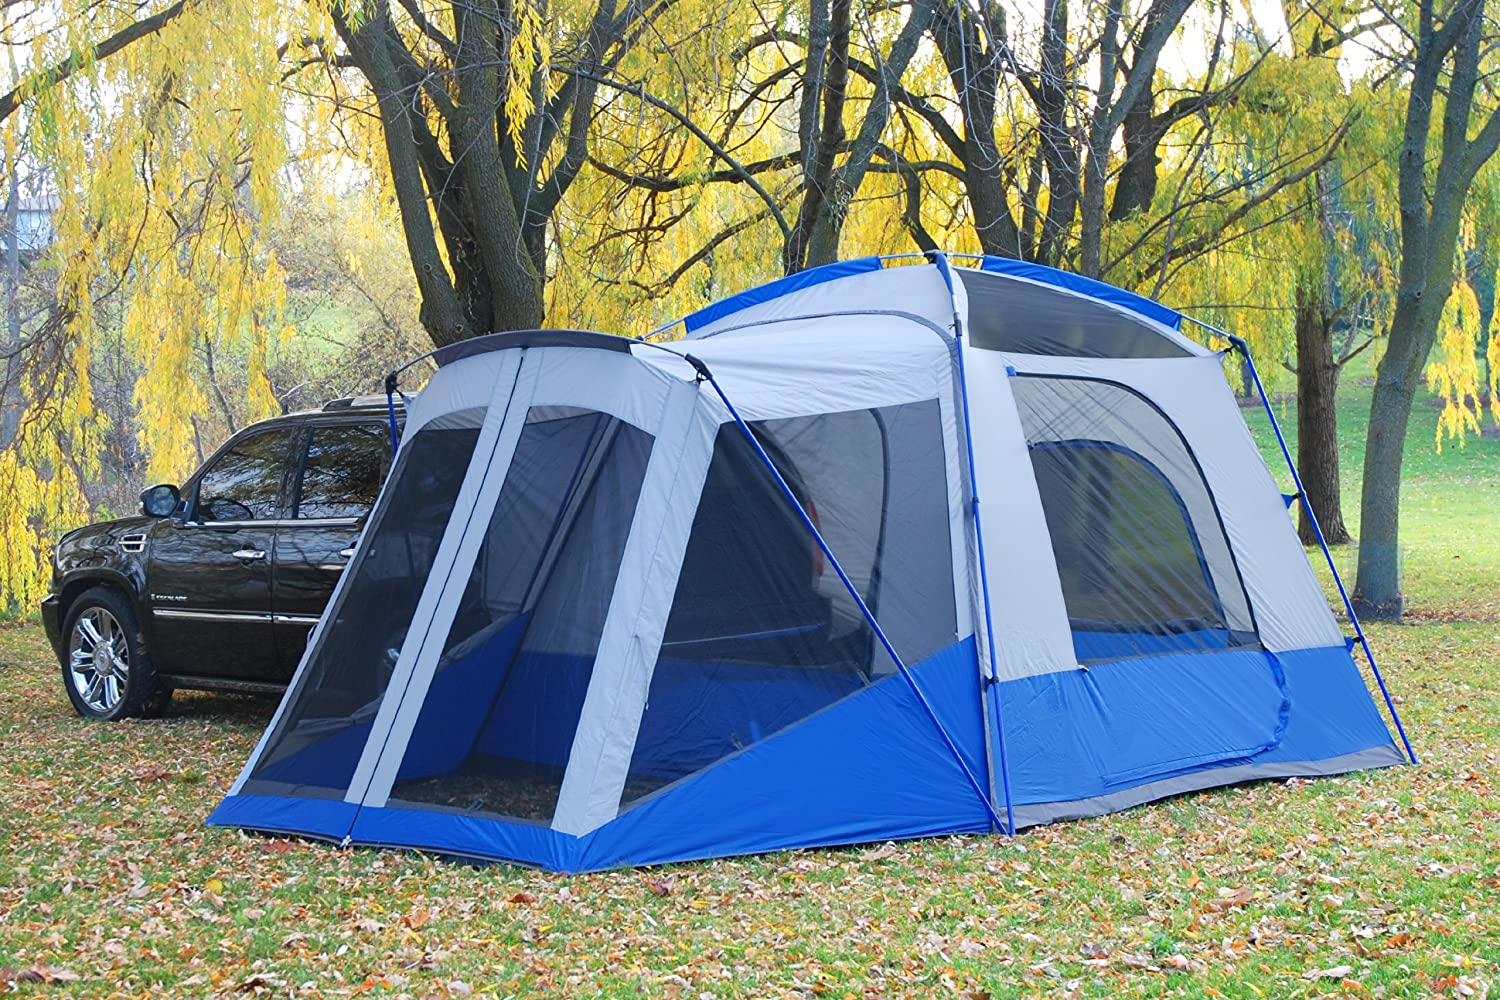 Amazon.com  Sportz SUV Blue/Grey Tent with Screen Room (10 x10 x7.25-Feet)  Family Tents  Sports u0026 Outdoors & Amazon.com : Sportz SUV Blue/Grey Tent with Screen Room (10 x10 x7 ...